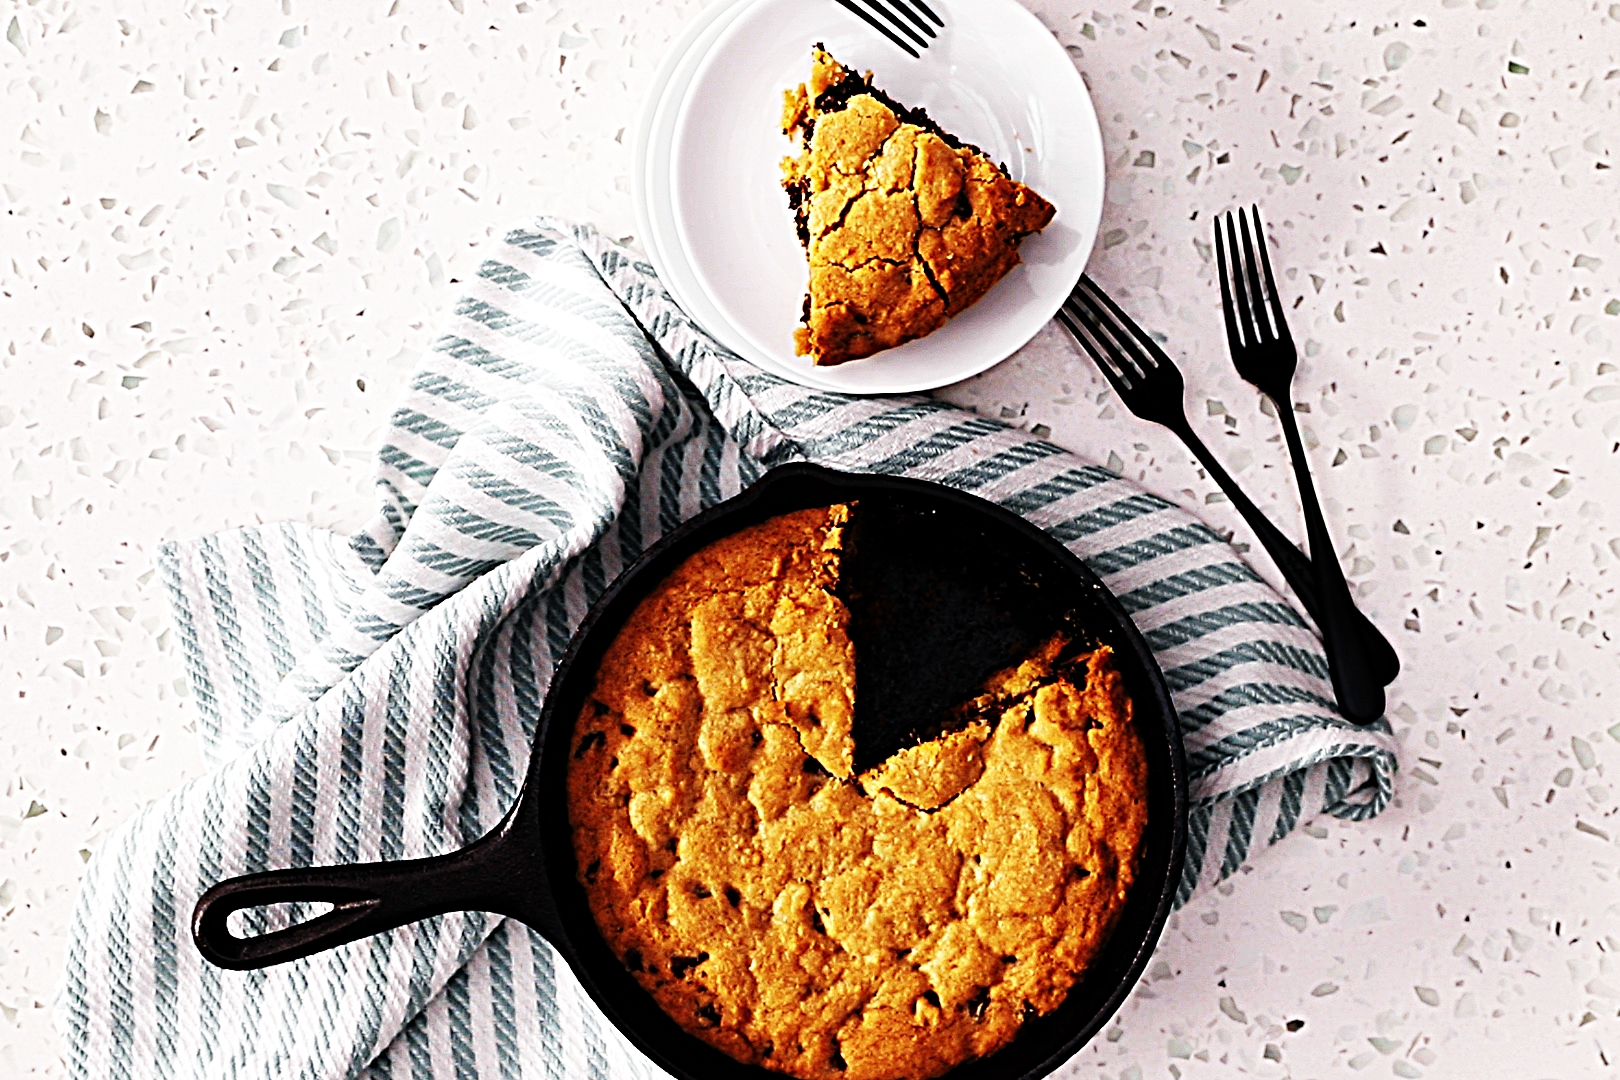 Stupid-Easy Recipe for Chocolate Chip Skillet Cookie (#1 Top-Rated)